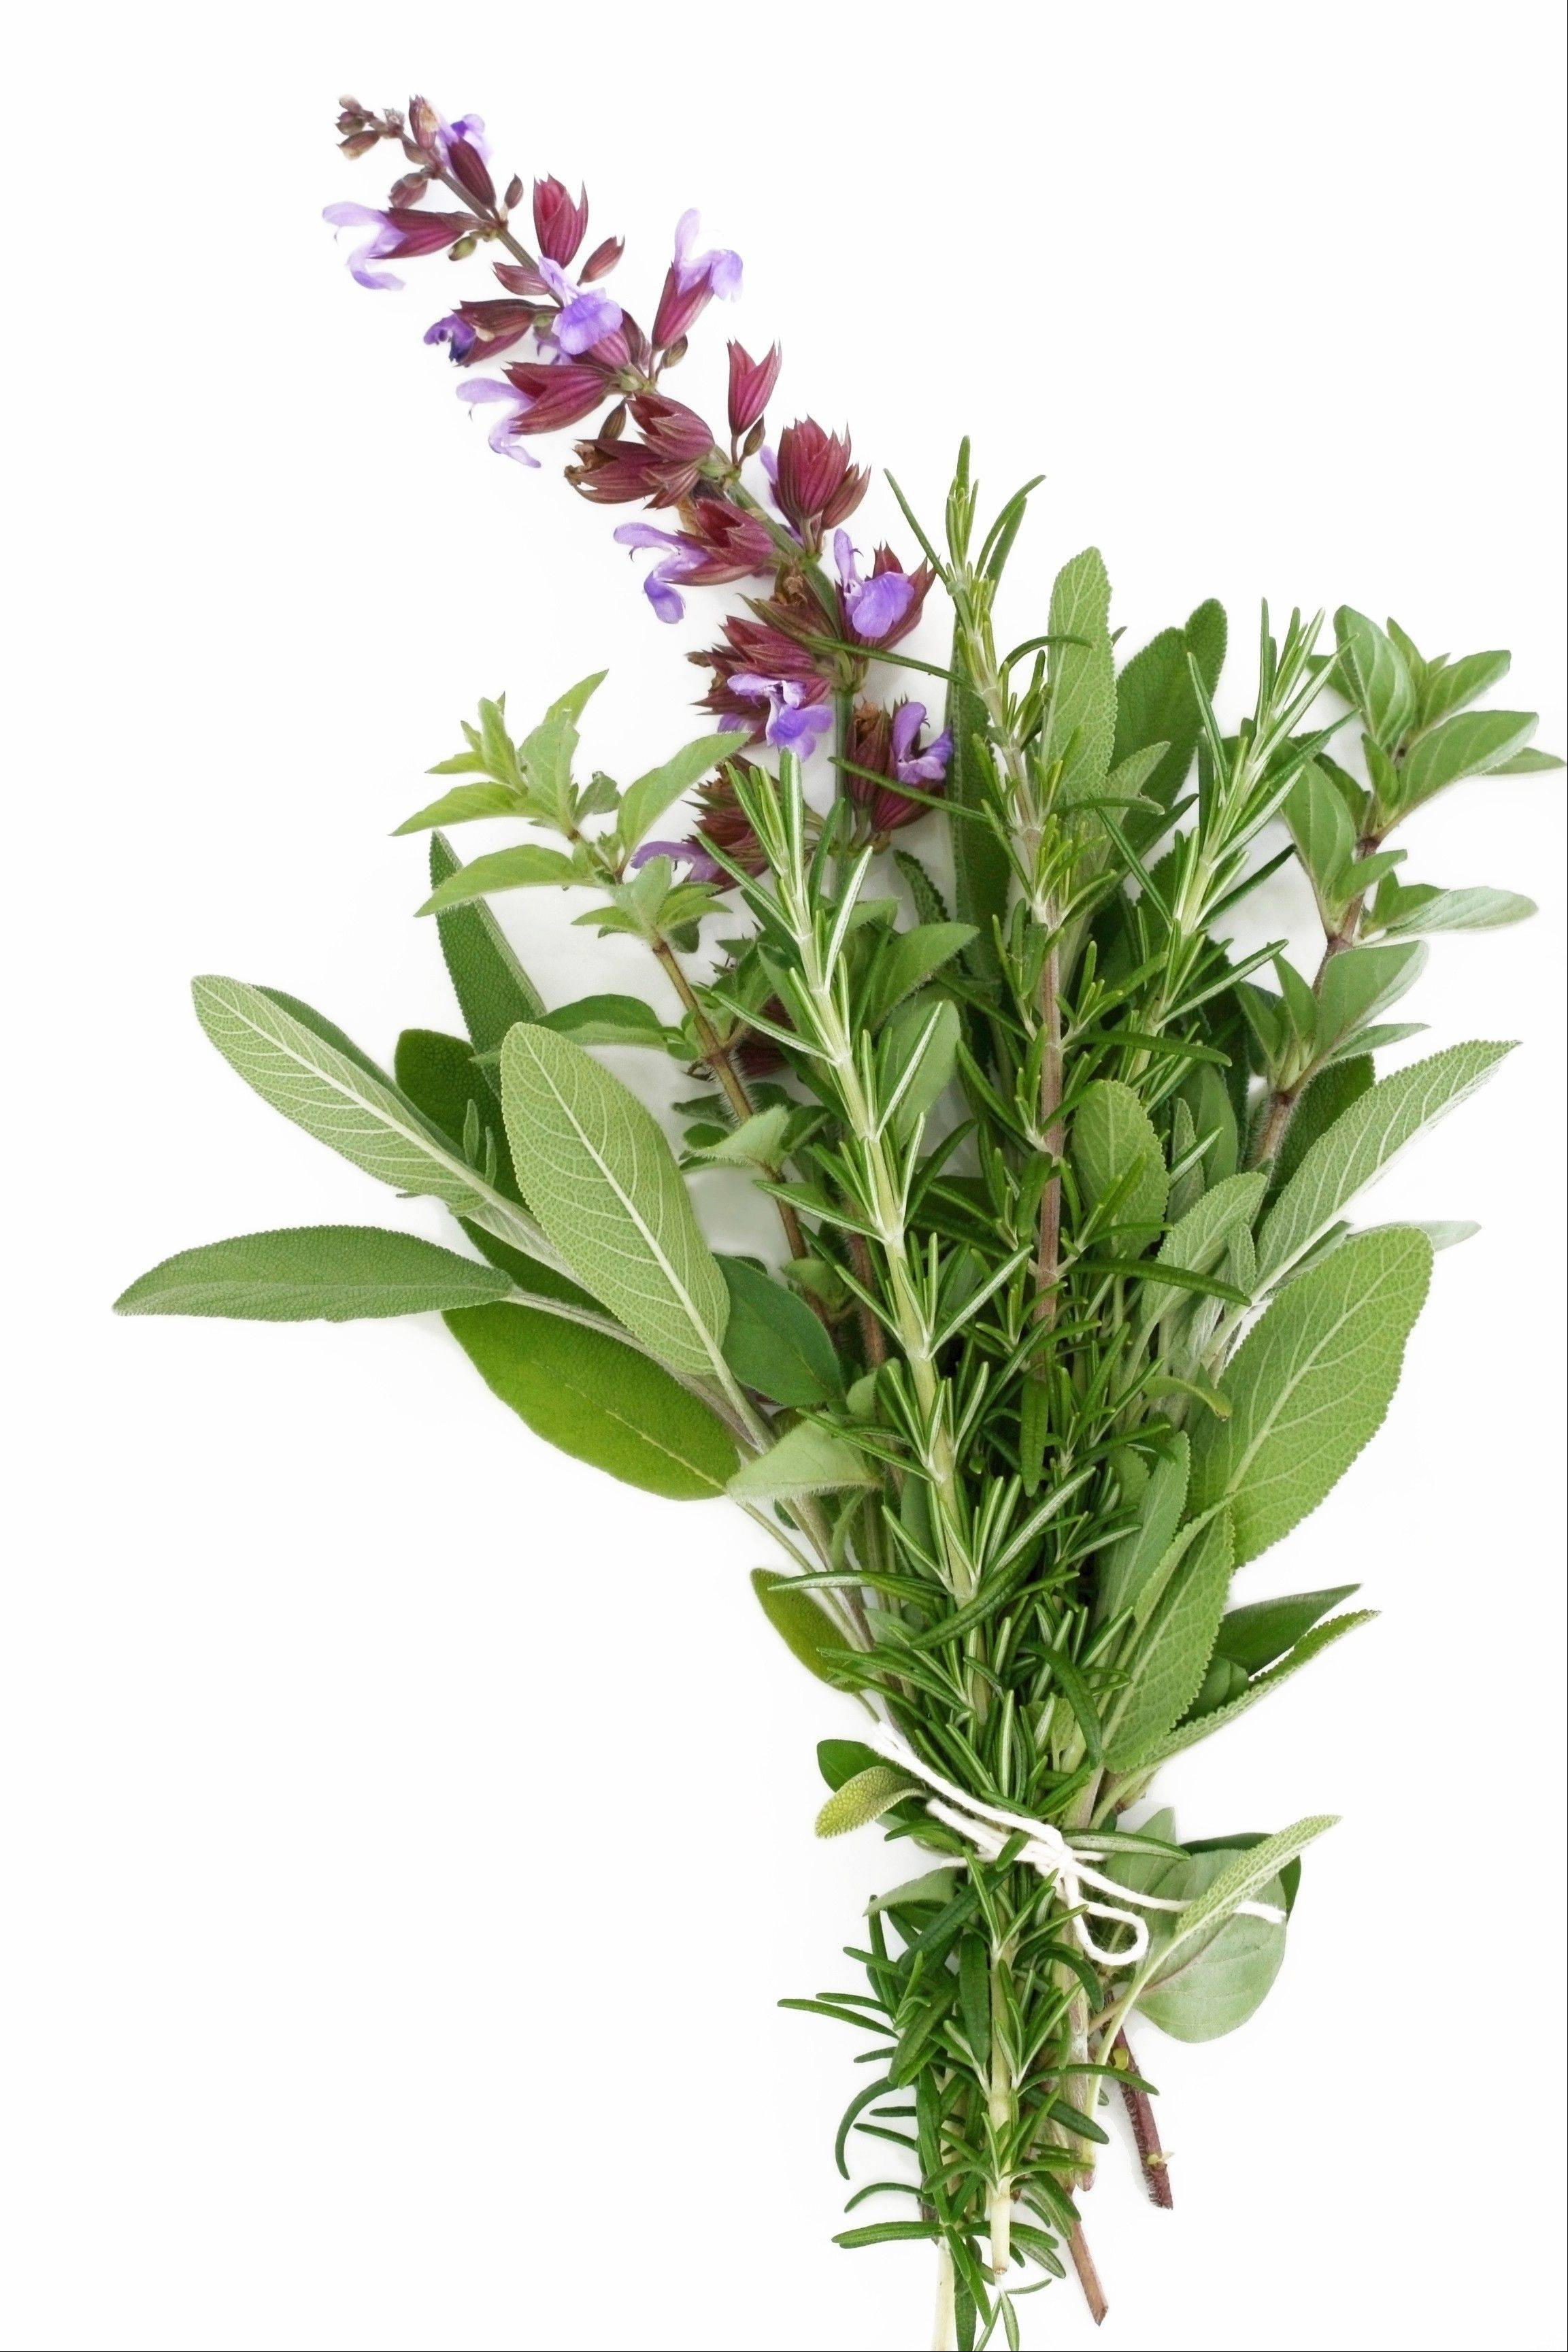 A bouquet garni of fresh rosemary, flowering sage and oregano.